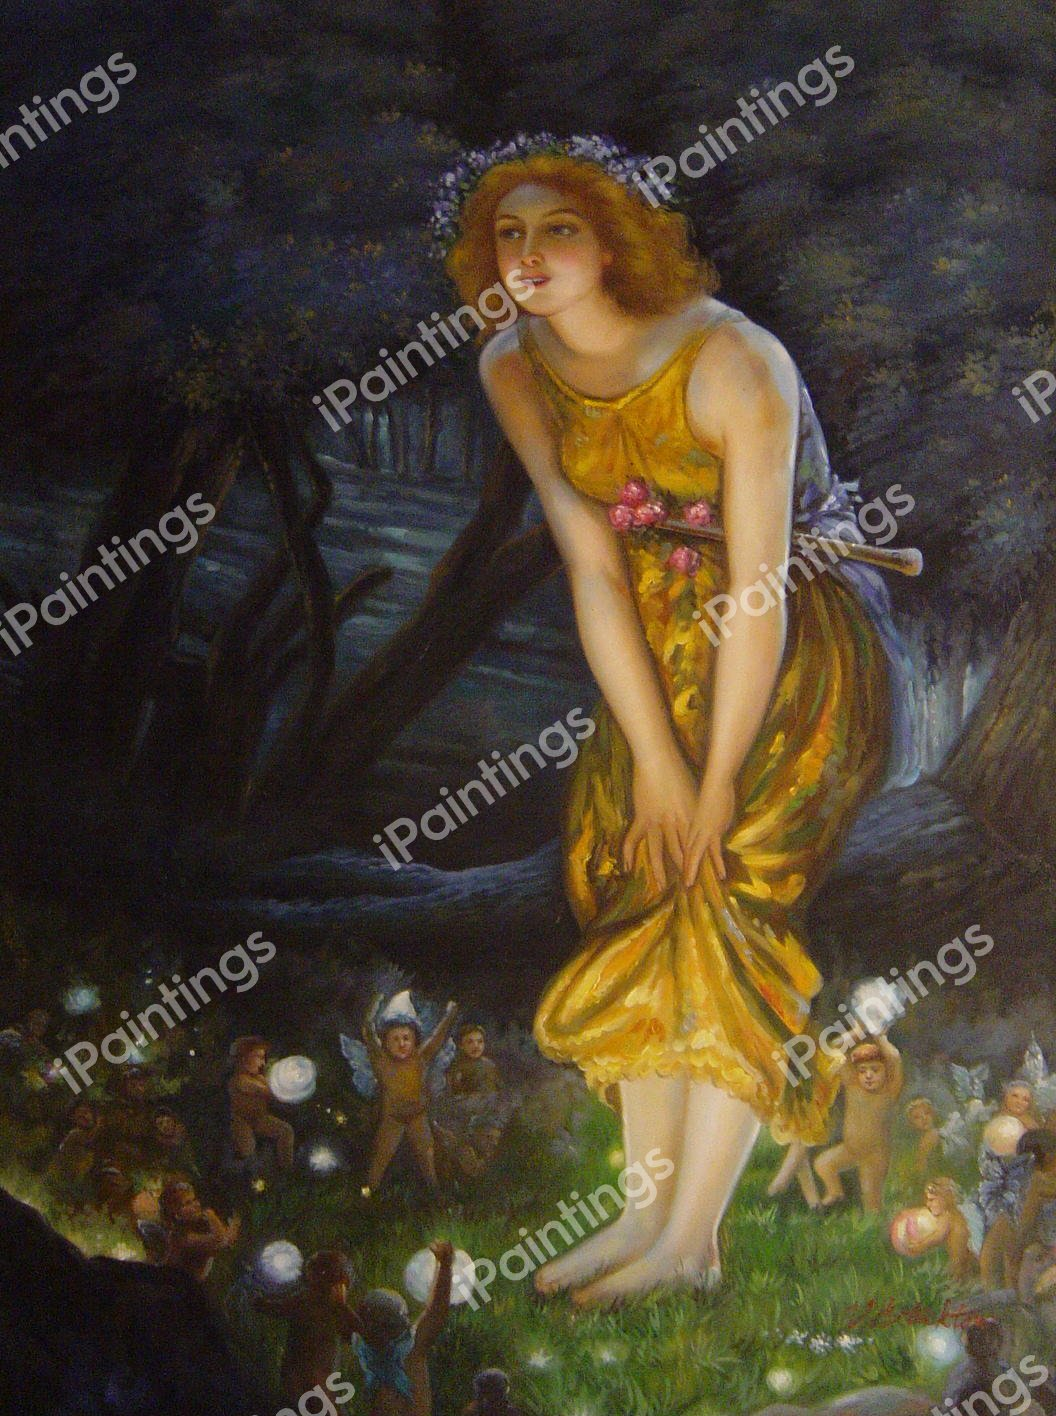 Midsummer Eve Painting by Edward Robert Hughes Reproduction | iPaintings.com